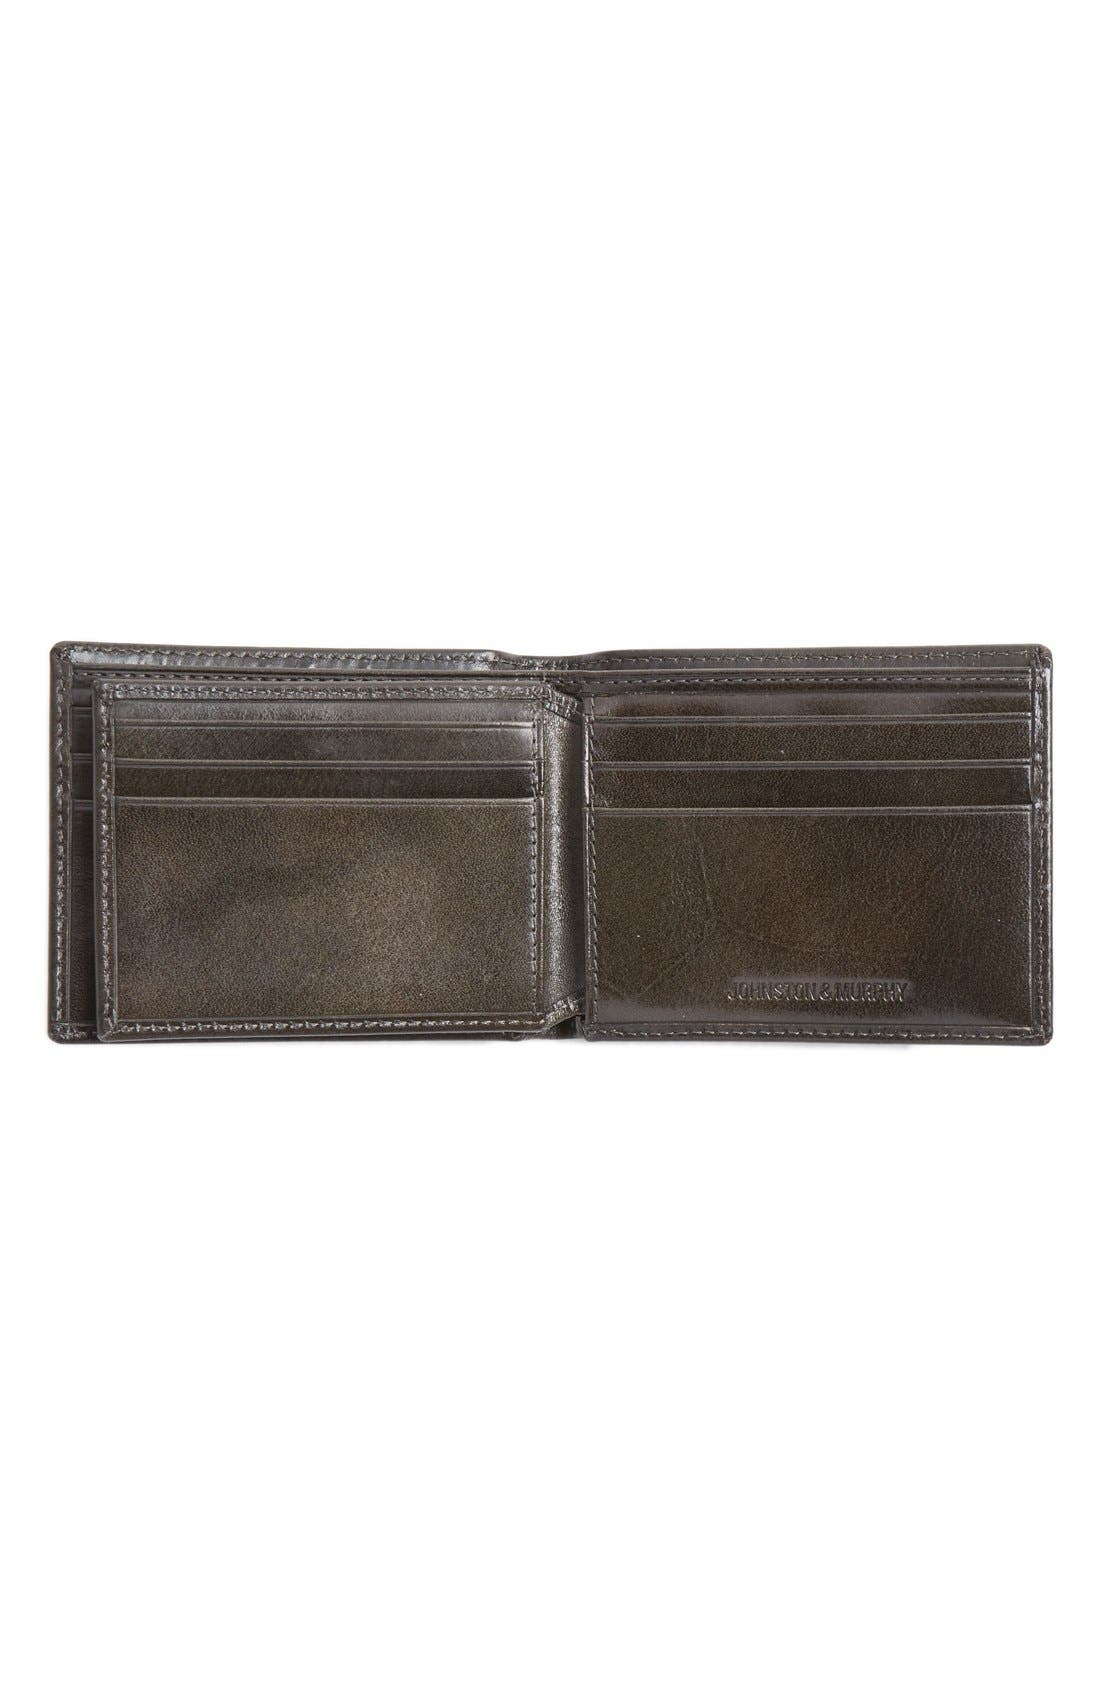 Flip Billfold Leather Wallet,                             Alternate thumbnail 3, color,                             CHARCOAL